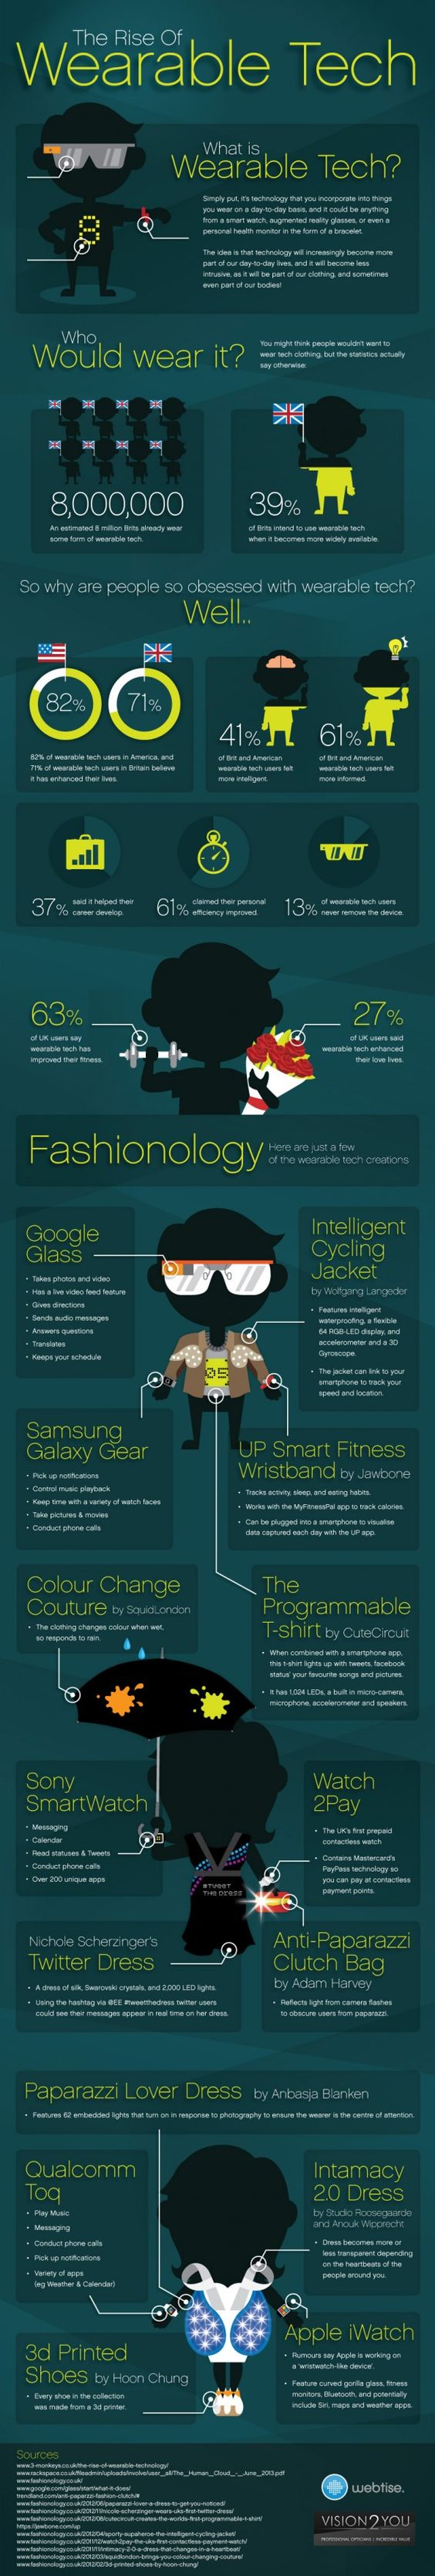 The Rise of Wearable Technology Infographic. What is Wearable Tech? Who Would Wear It? Fashionology. From Google Glass, Colour Changing Jackets, Smart Wristbands and Watches, 3D Printed Shoes and more #wearables